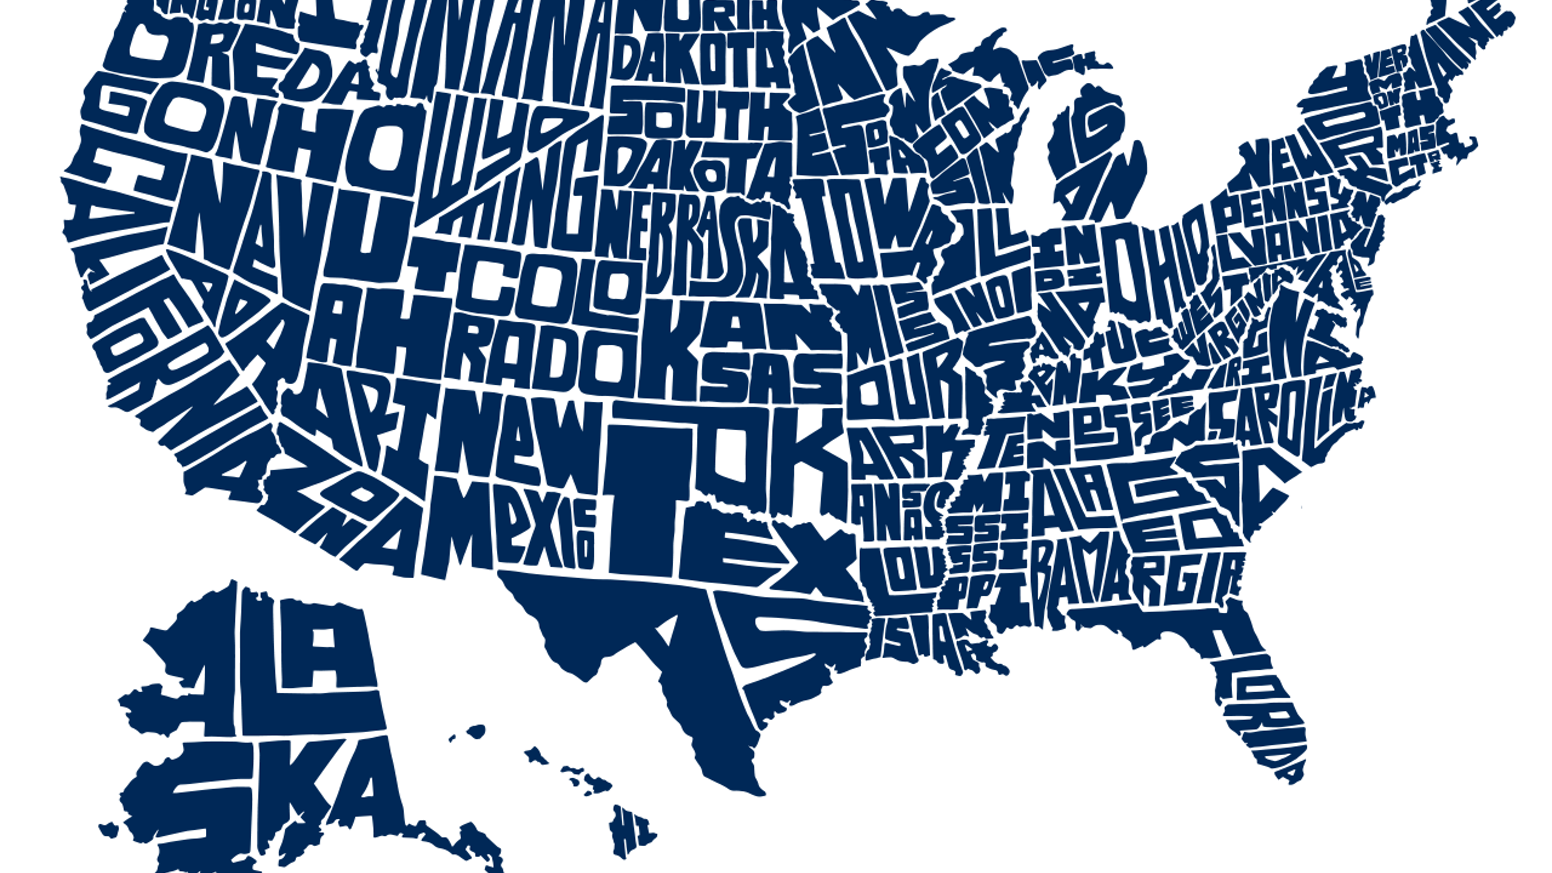 Stately Type - Hand-lettered US Map Prints & T-shirts by David Lesue on education maps of the united states, state of texas map of united states, county maps of the united states,